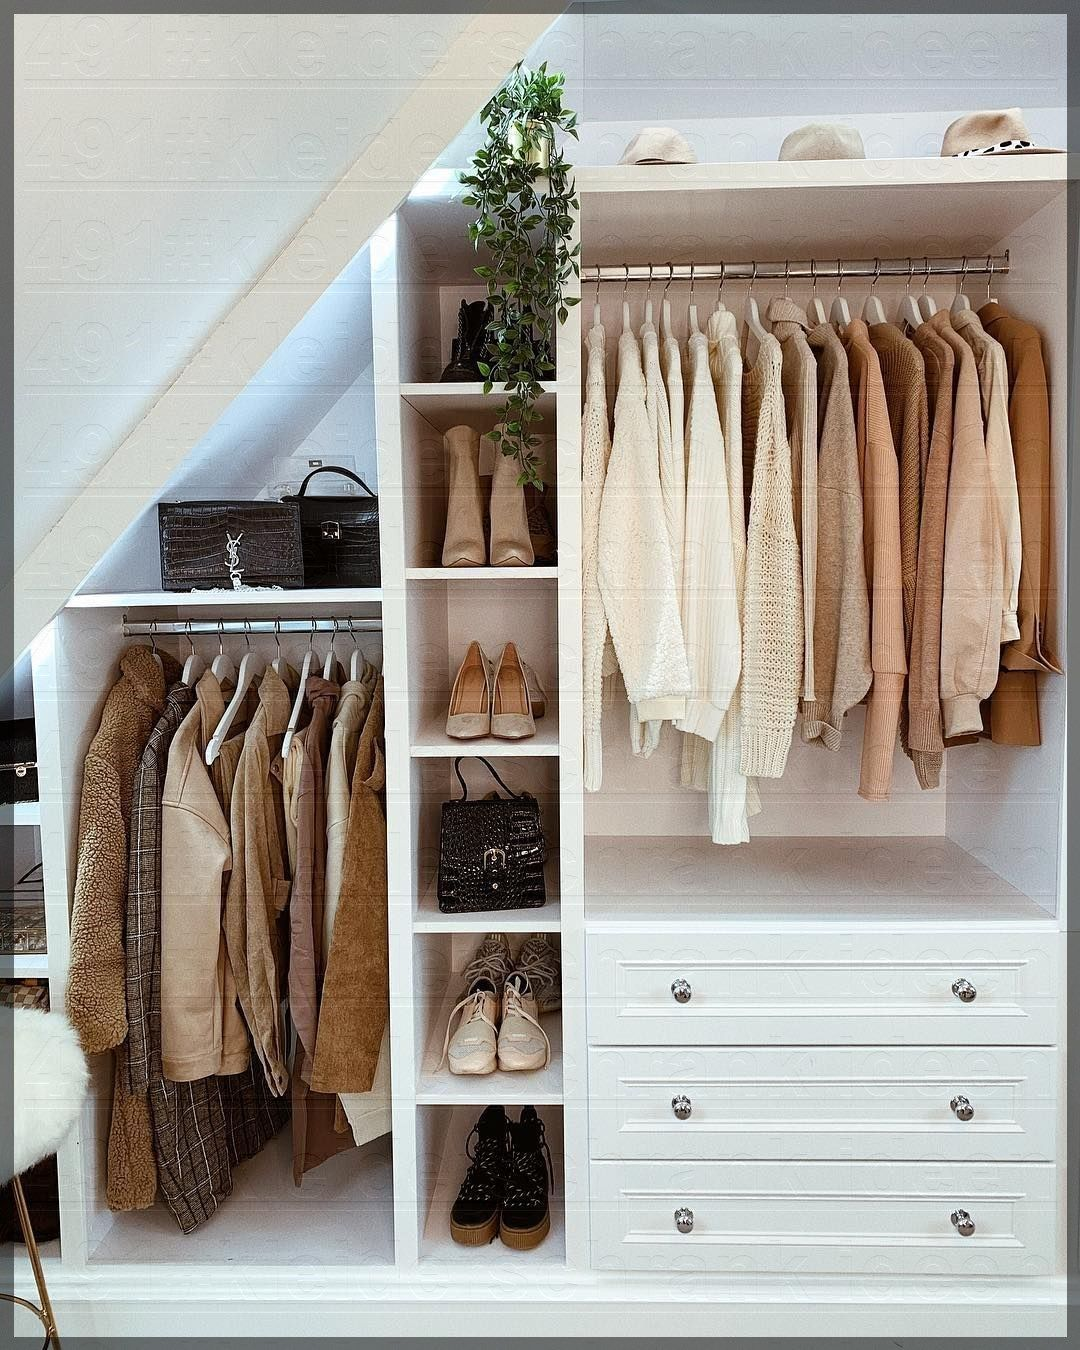 9+ Kleiderschrank #smallloftspaces #Klei… - Blog